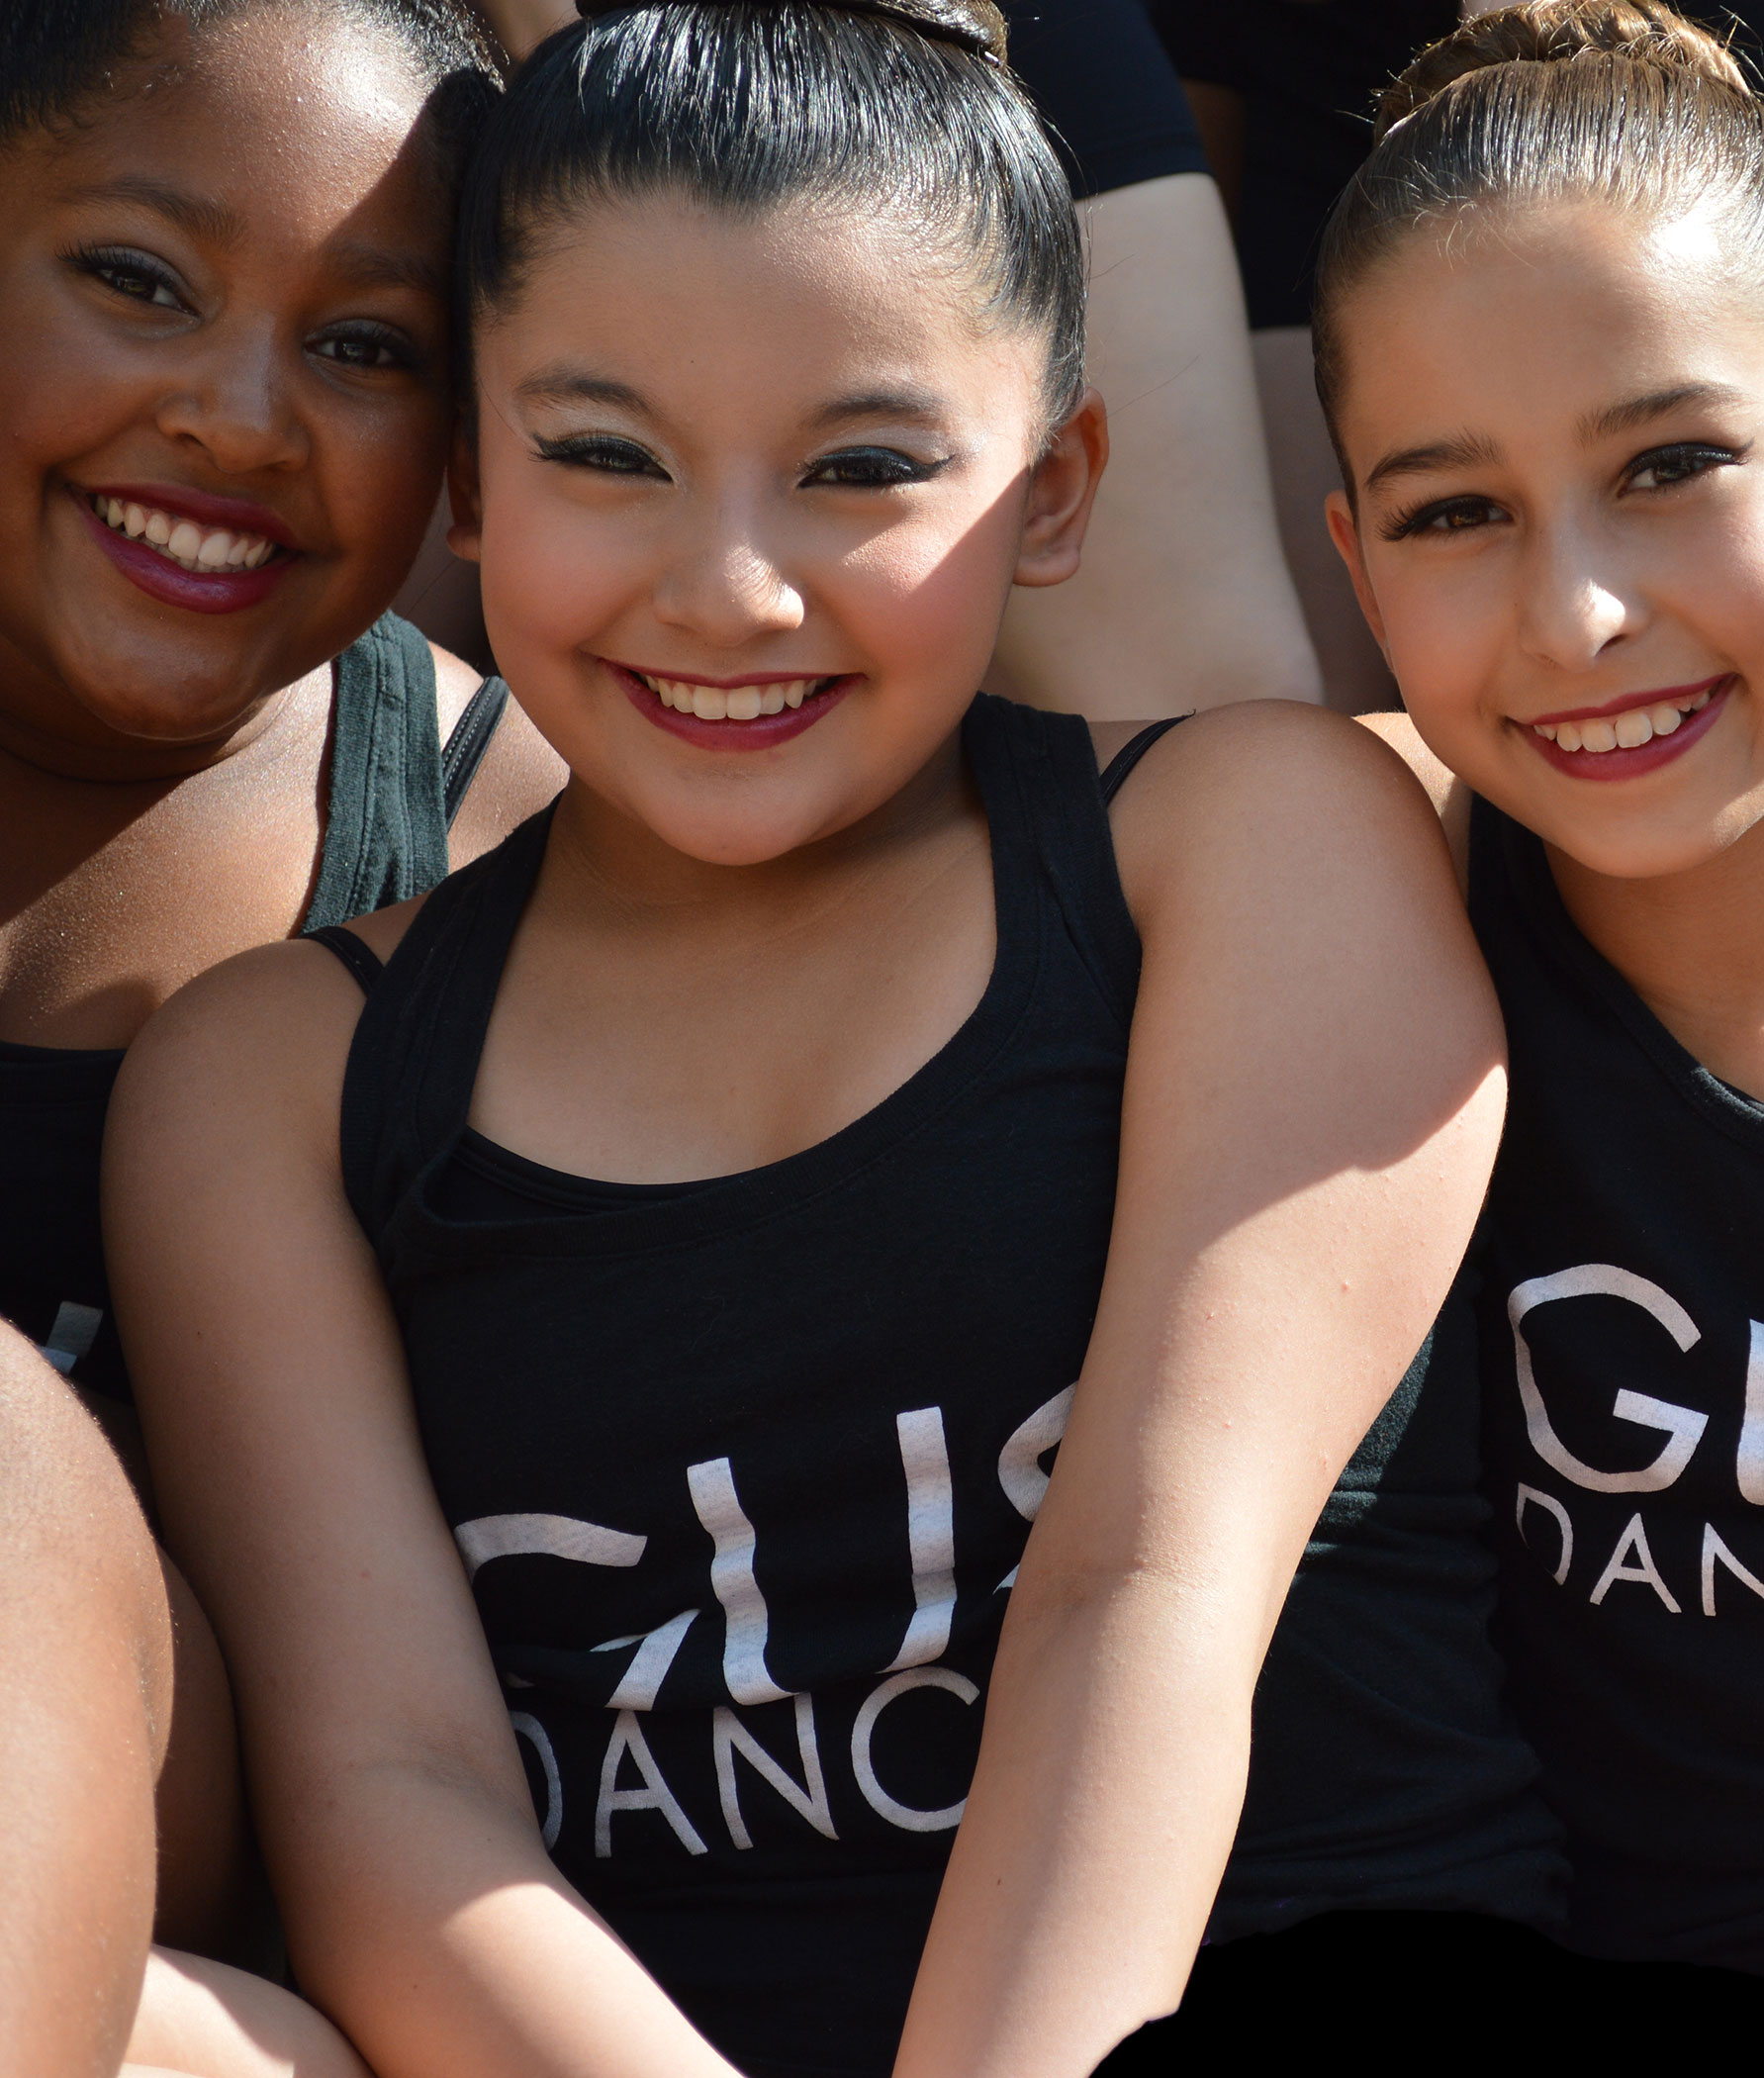 Gus Giordano Dance School Summer Classes Chicago